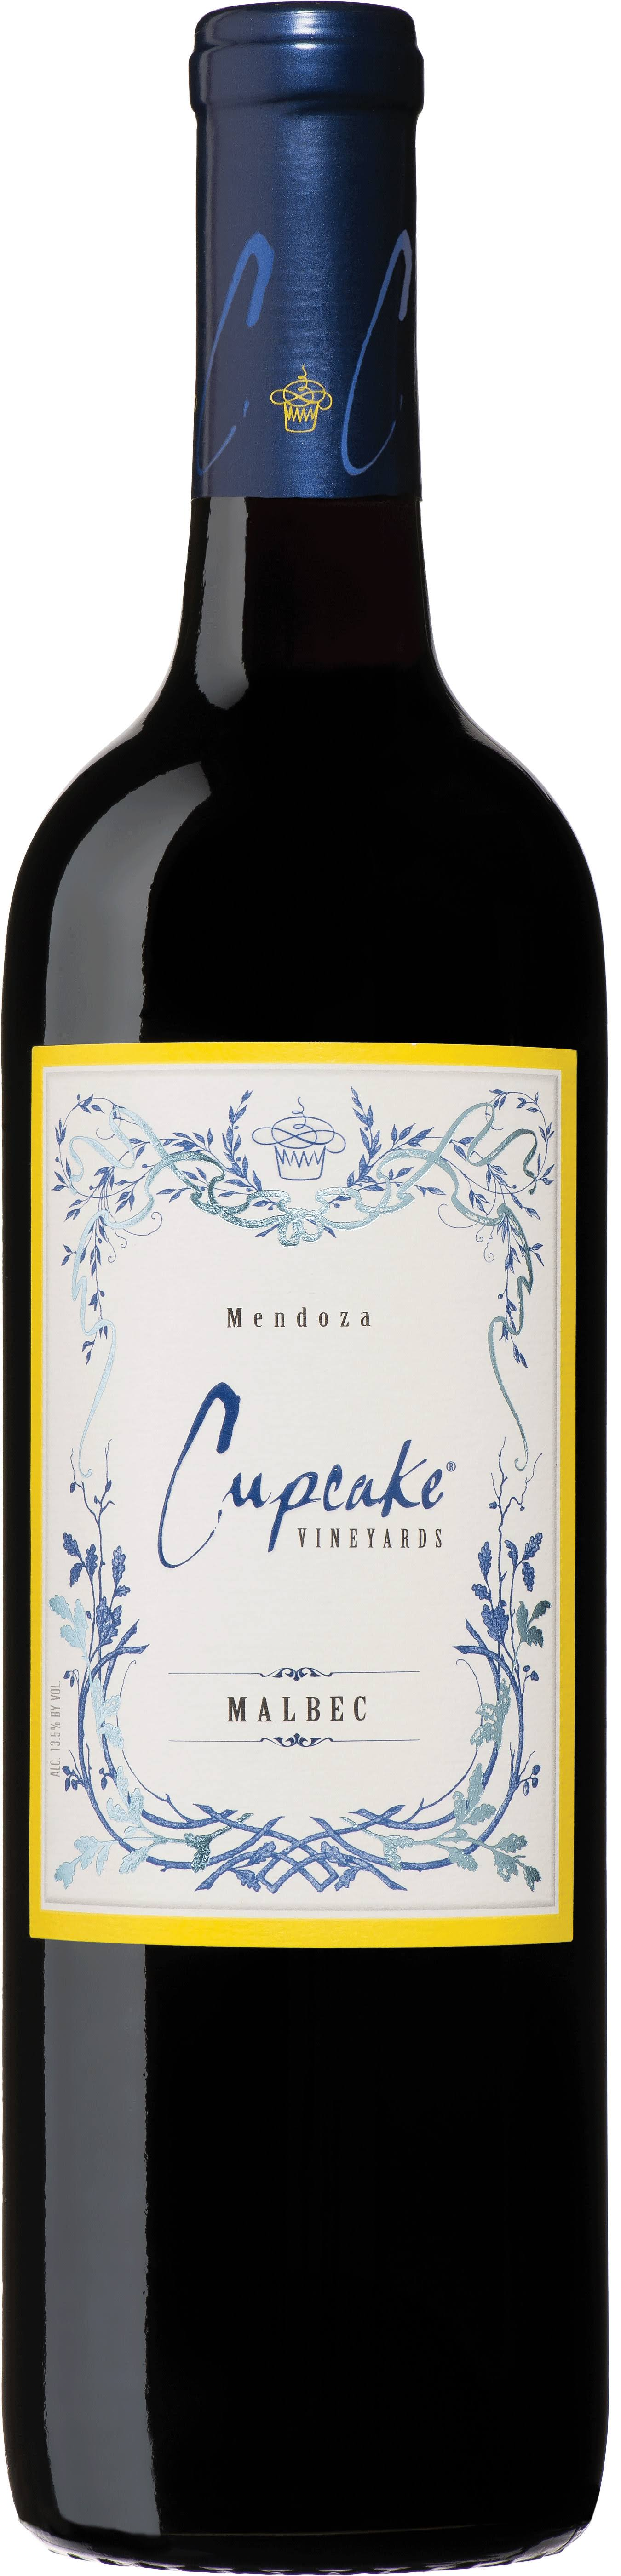 Cupcake Vineyards Malbec